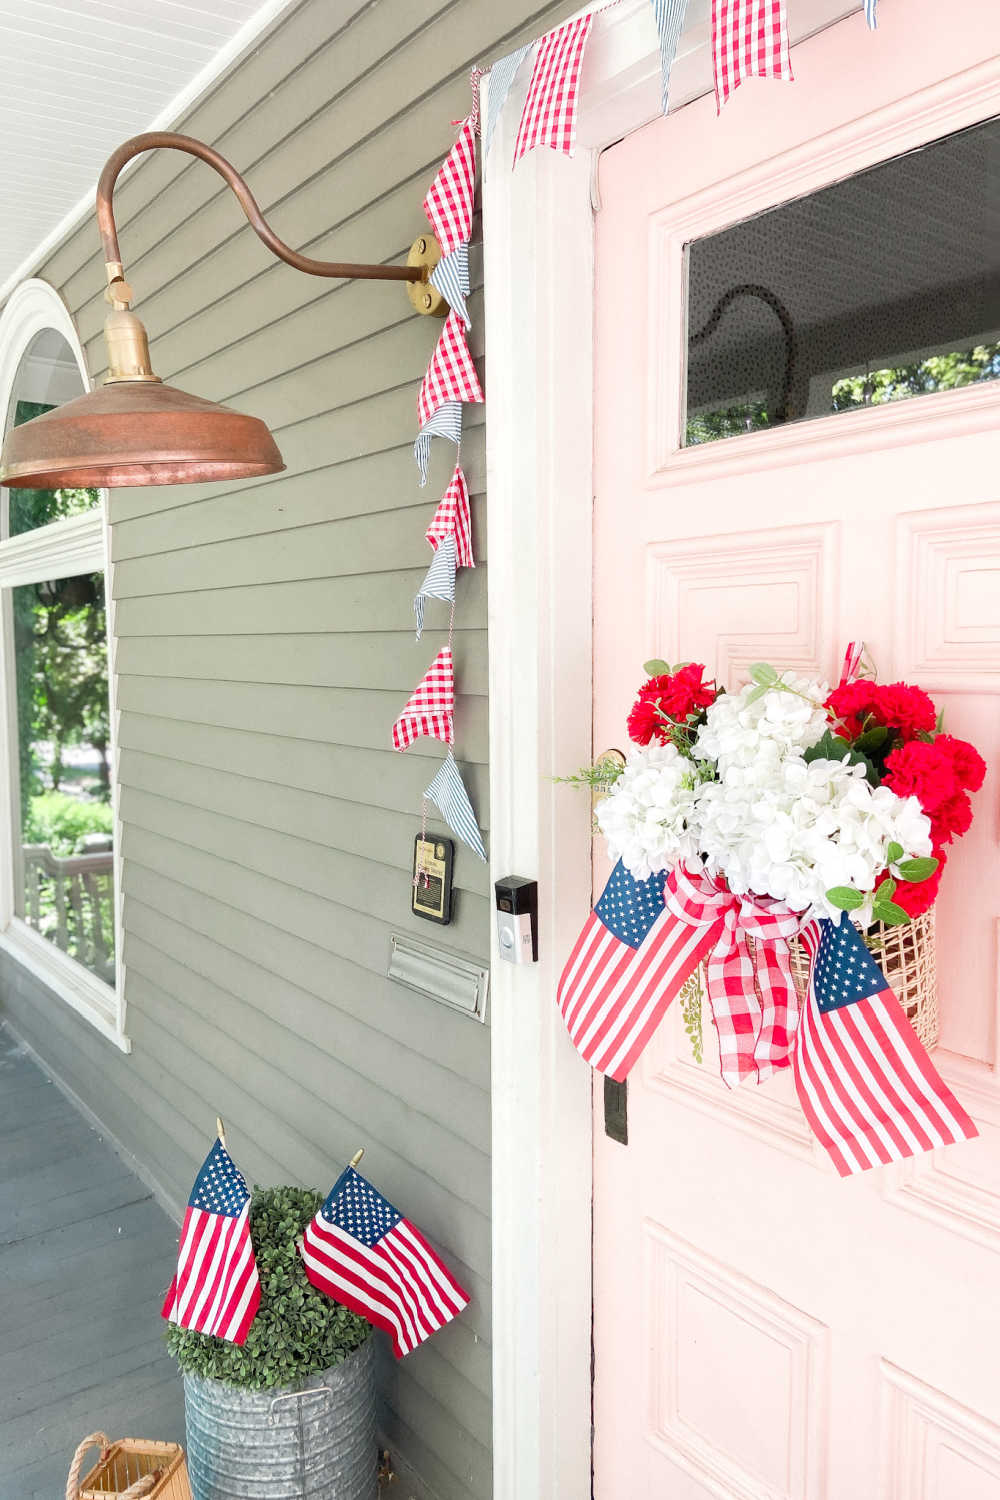 10-Minute Patriotic Basket Wreath. Make an easy and festive fourth of july wreath in just minutes!